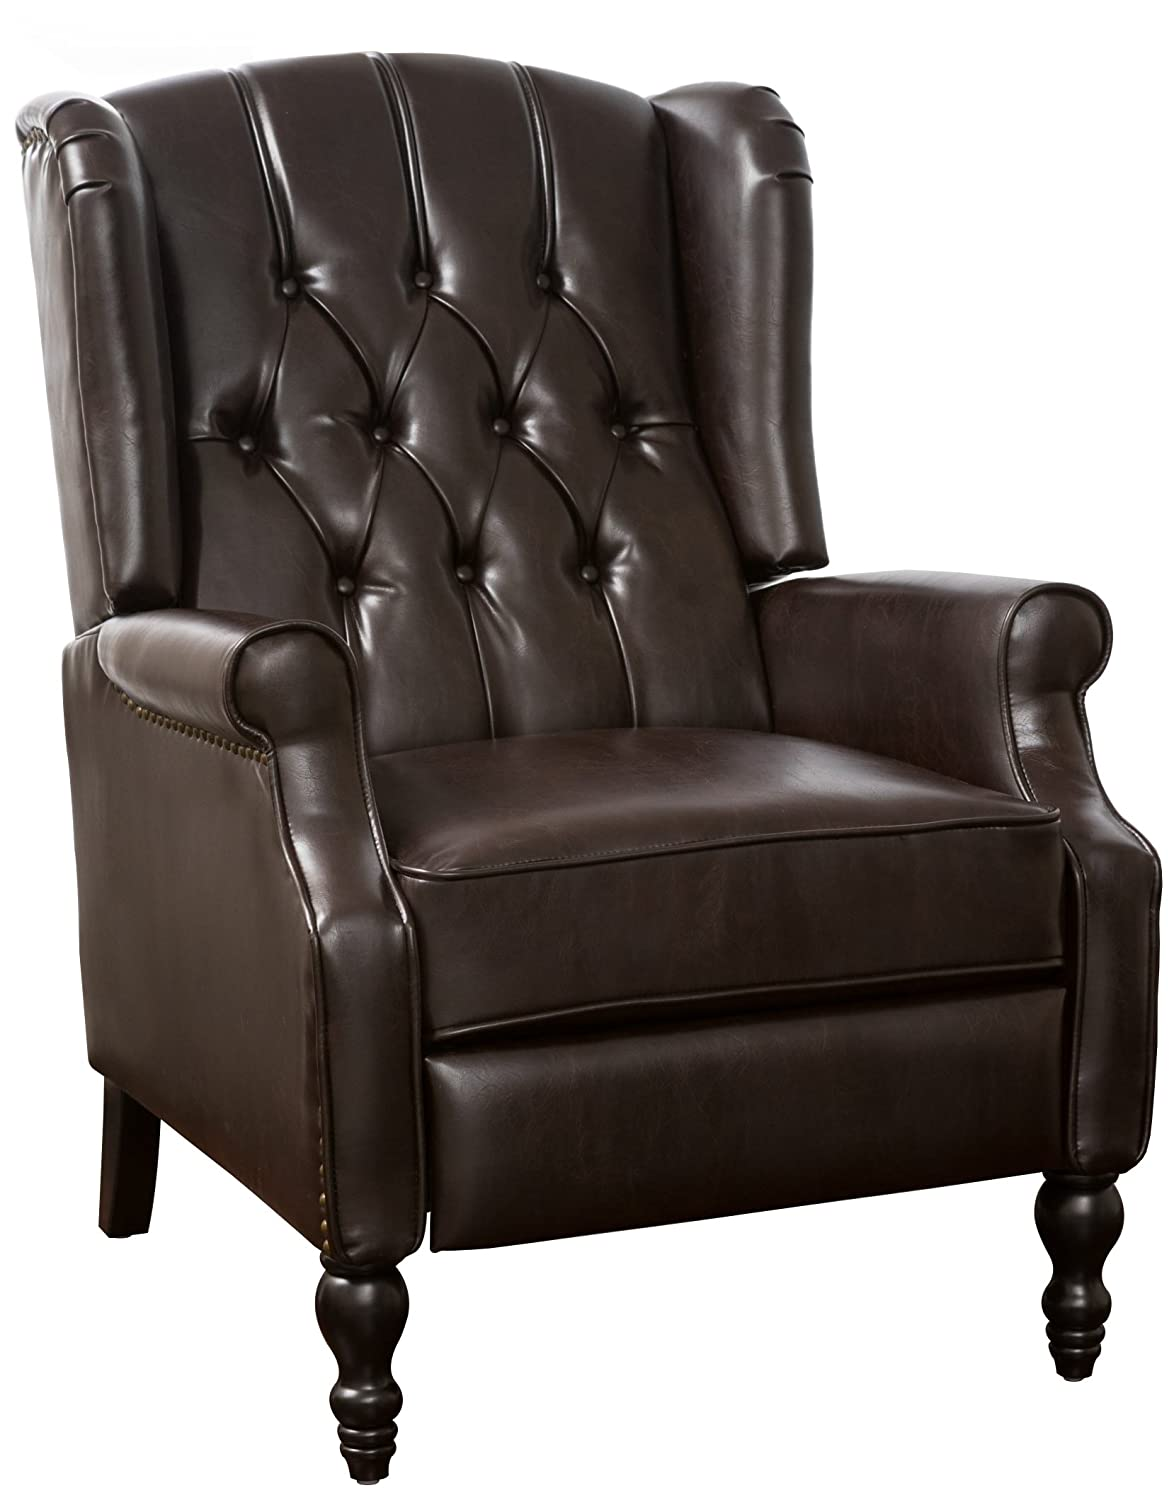 GDF Studio 296111 Elizabeth Tufted Brown Bonded Leather Recliner Arm Chair